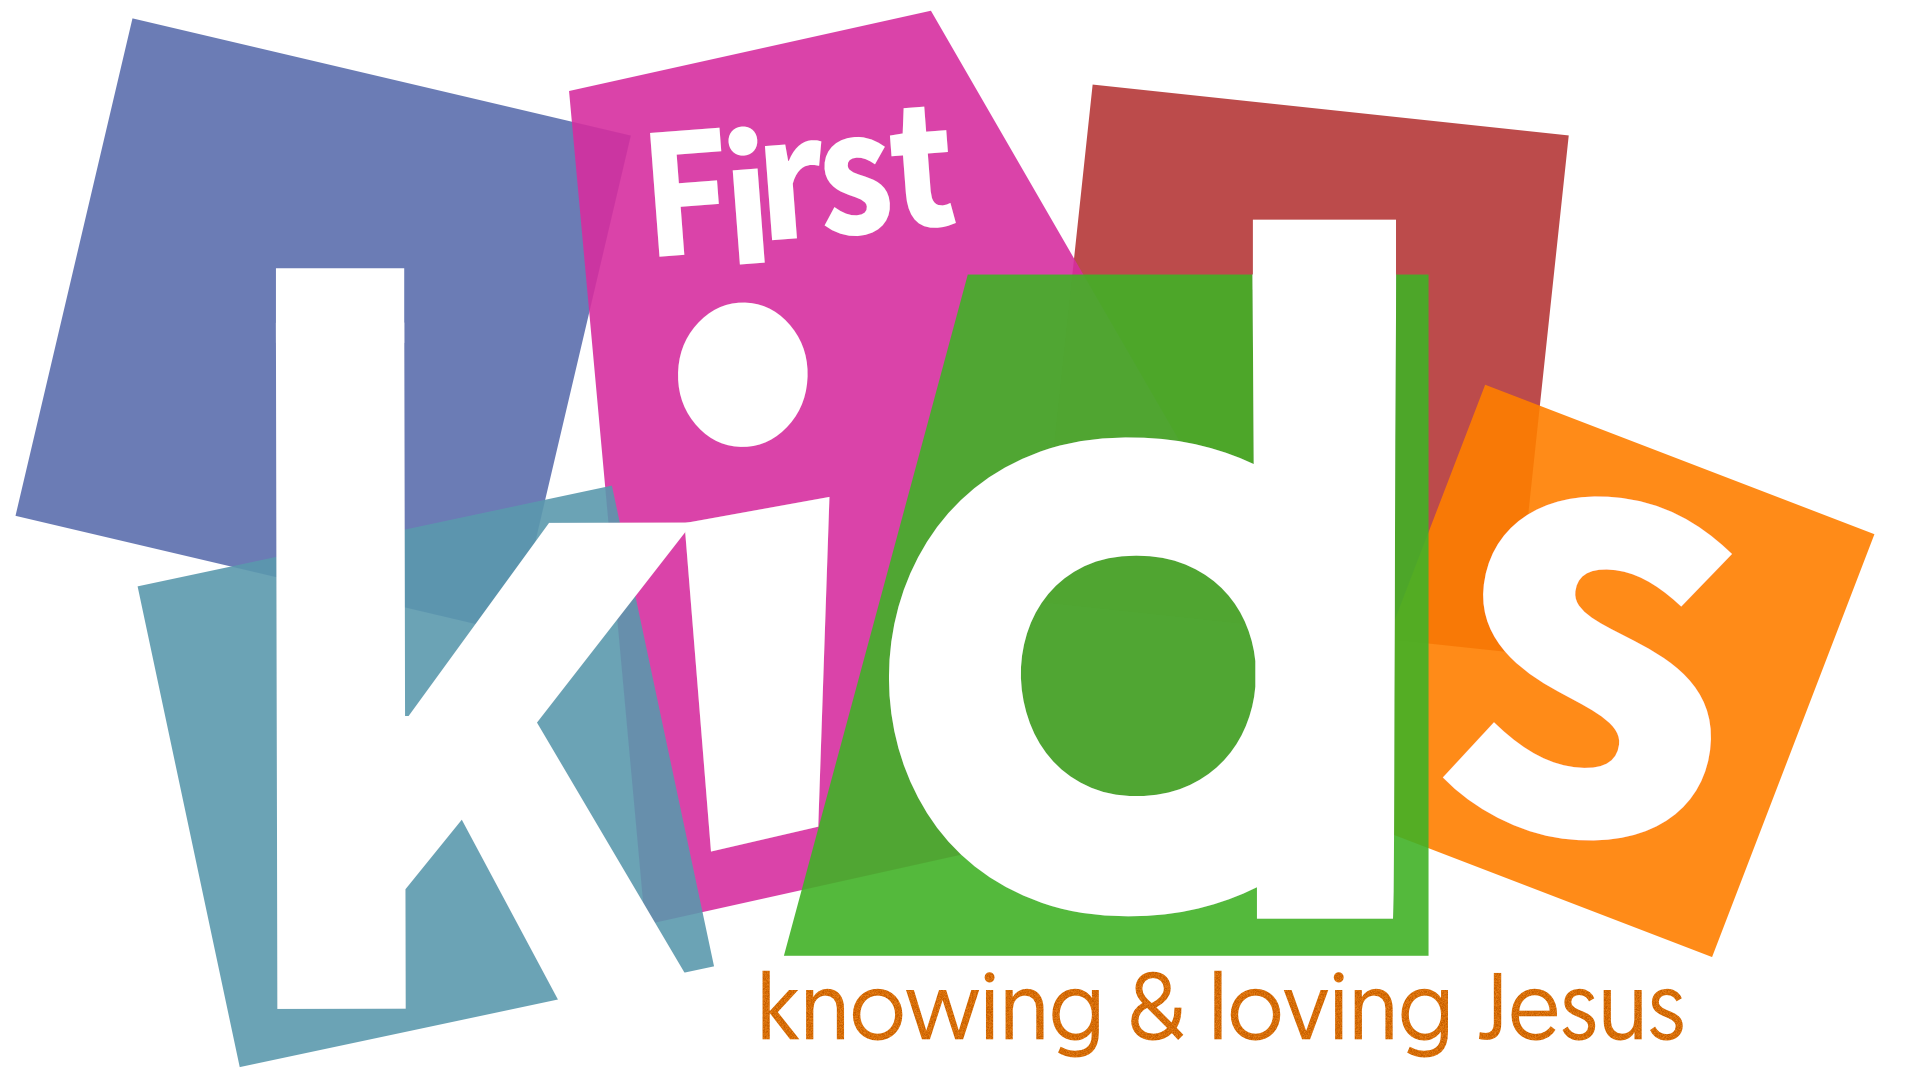 First Baptist Moncton Trial Logo First Kids V5 KNOWING & LOVING NO CHURCH LOGO Sept 2018.png